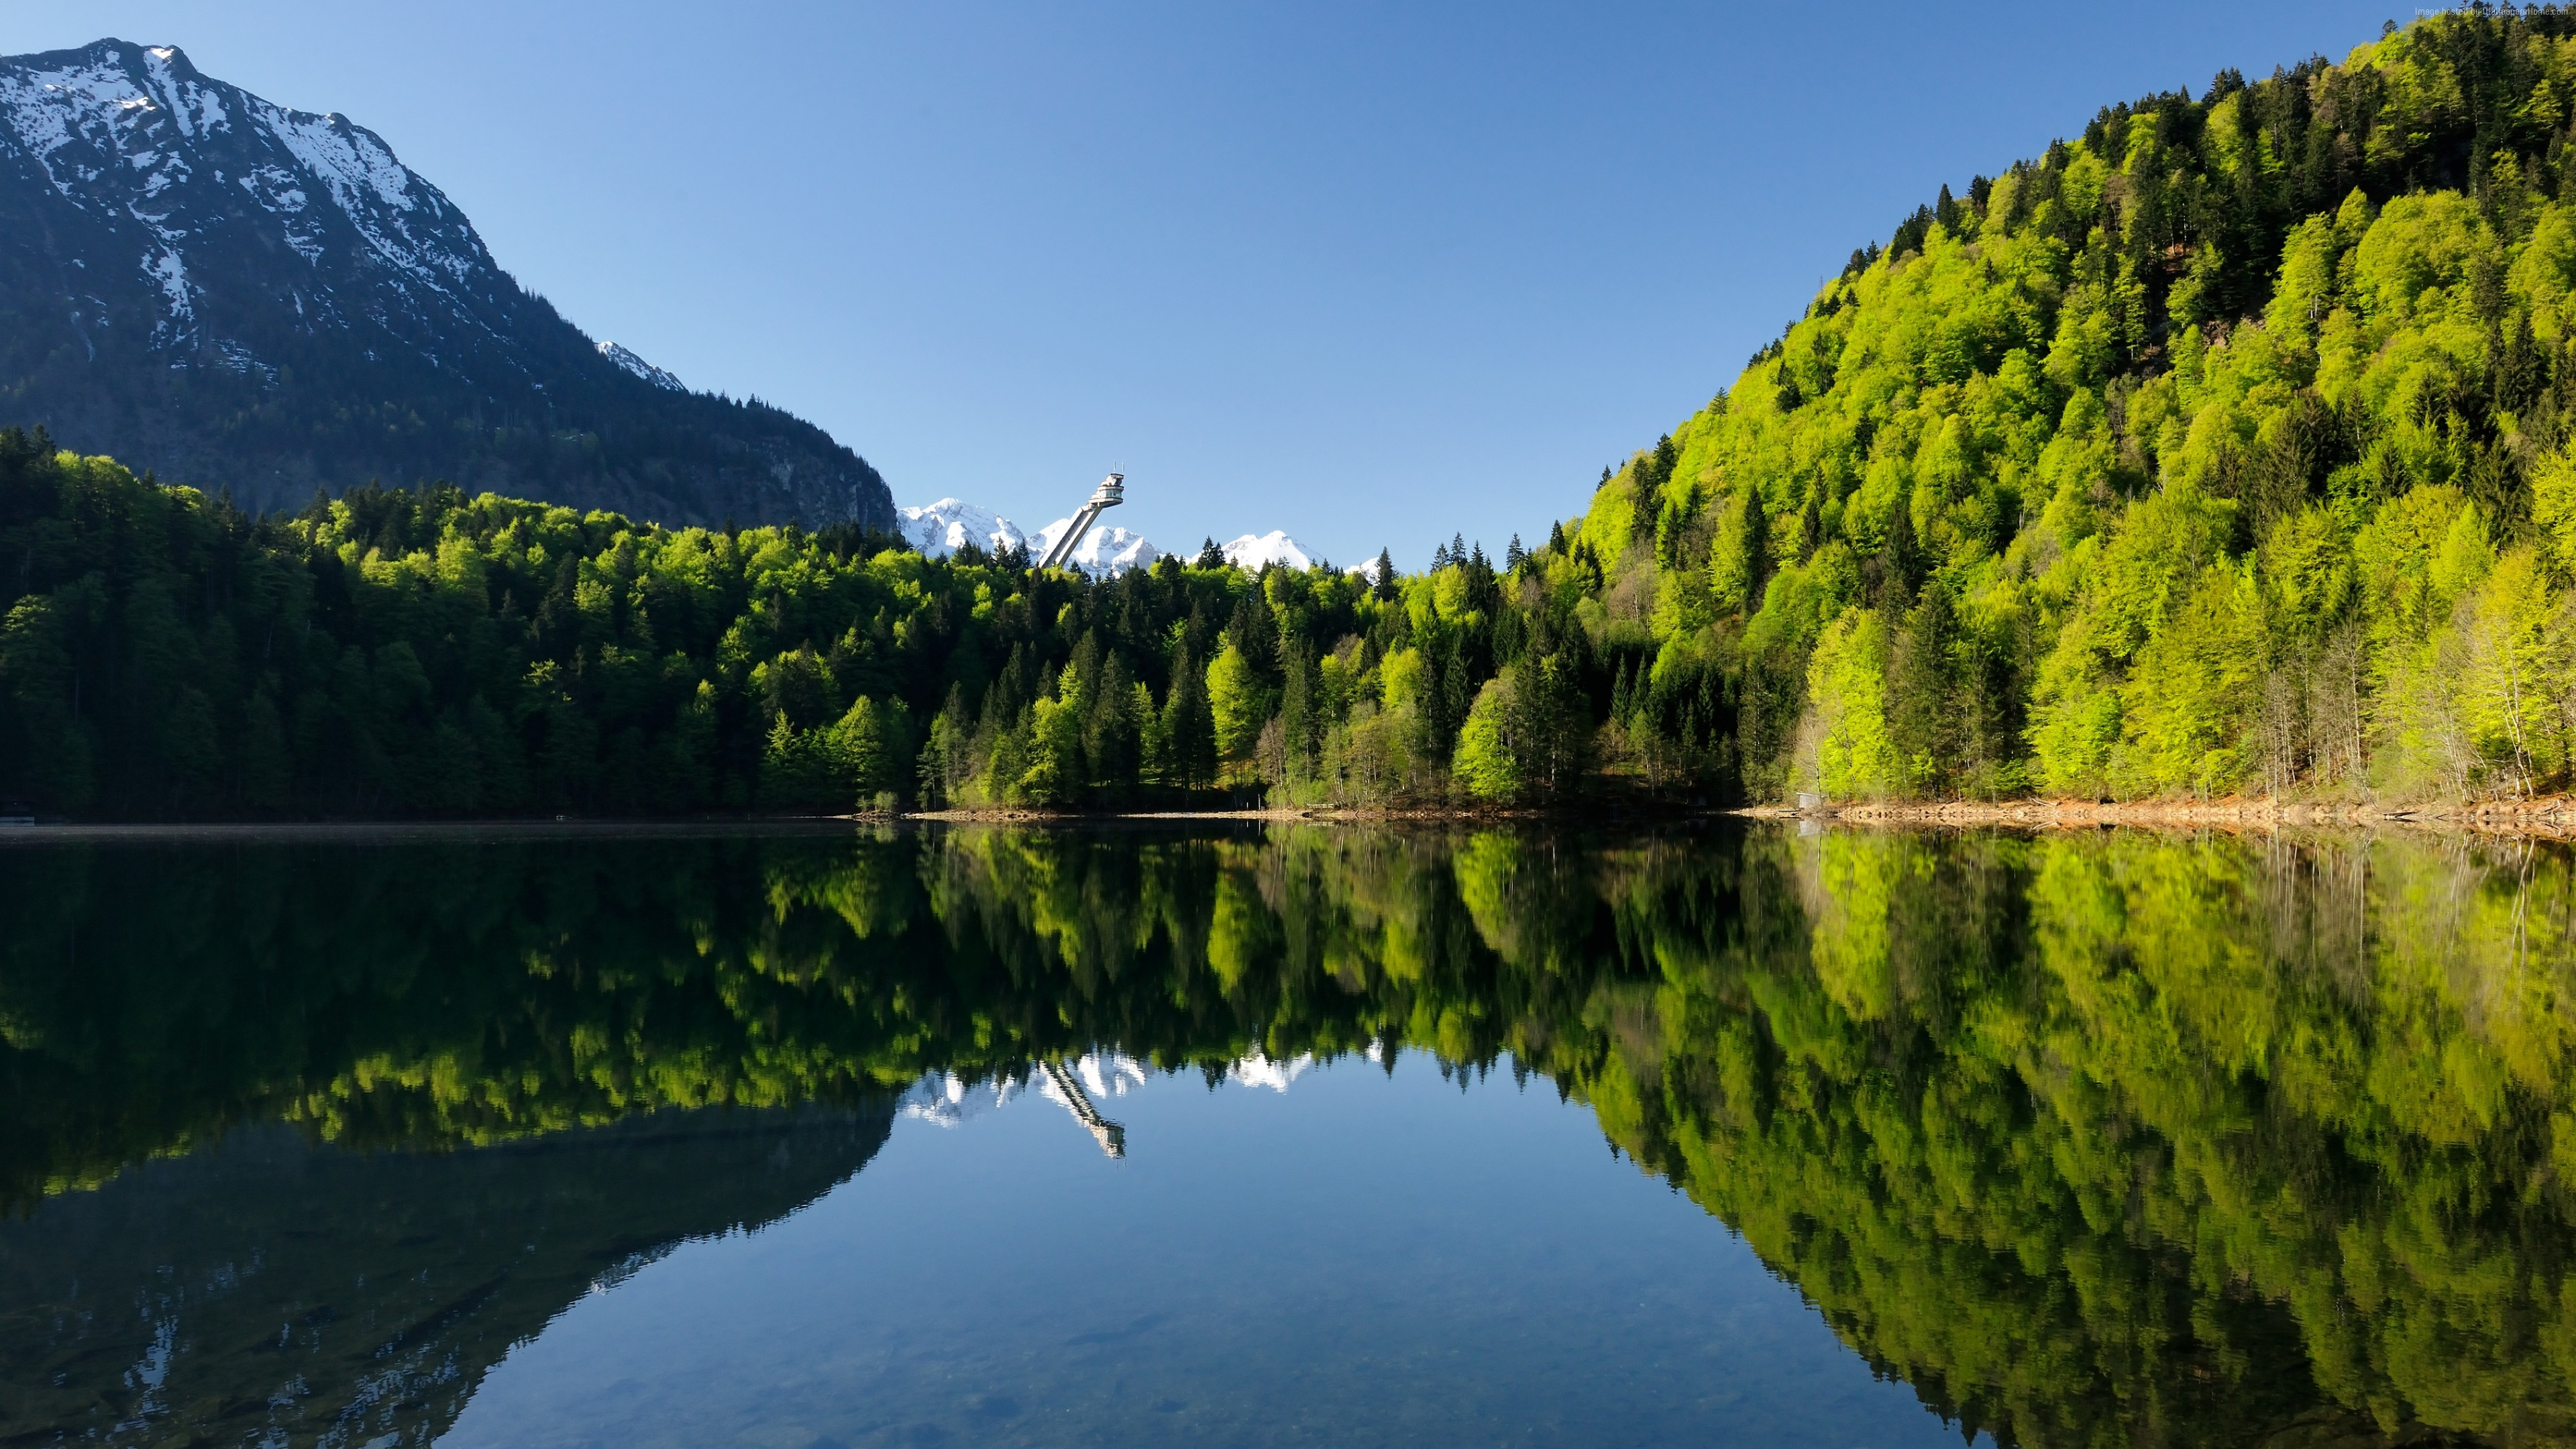 Wallpaper%20Oberstdorf,%20Germany,%20Europe,%20mountains,%20lake,%20forest,%204k,%20Nature%203275557